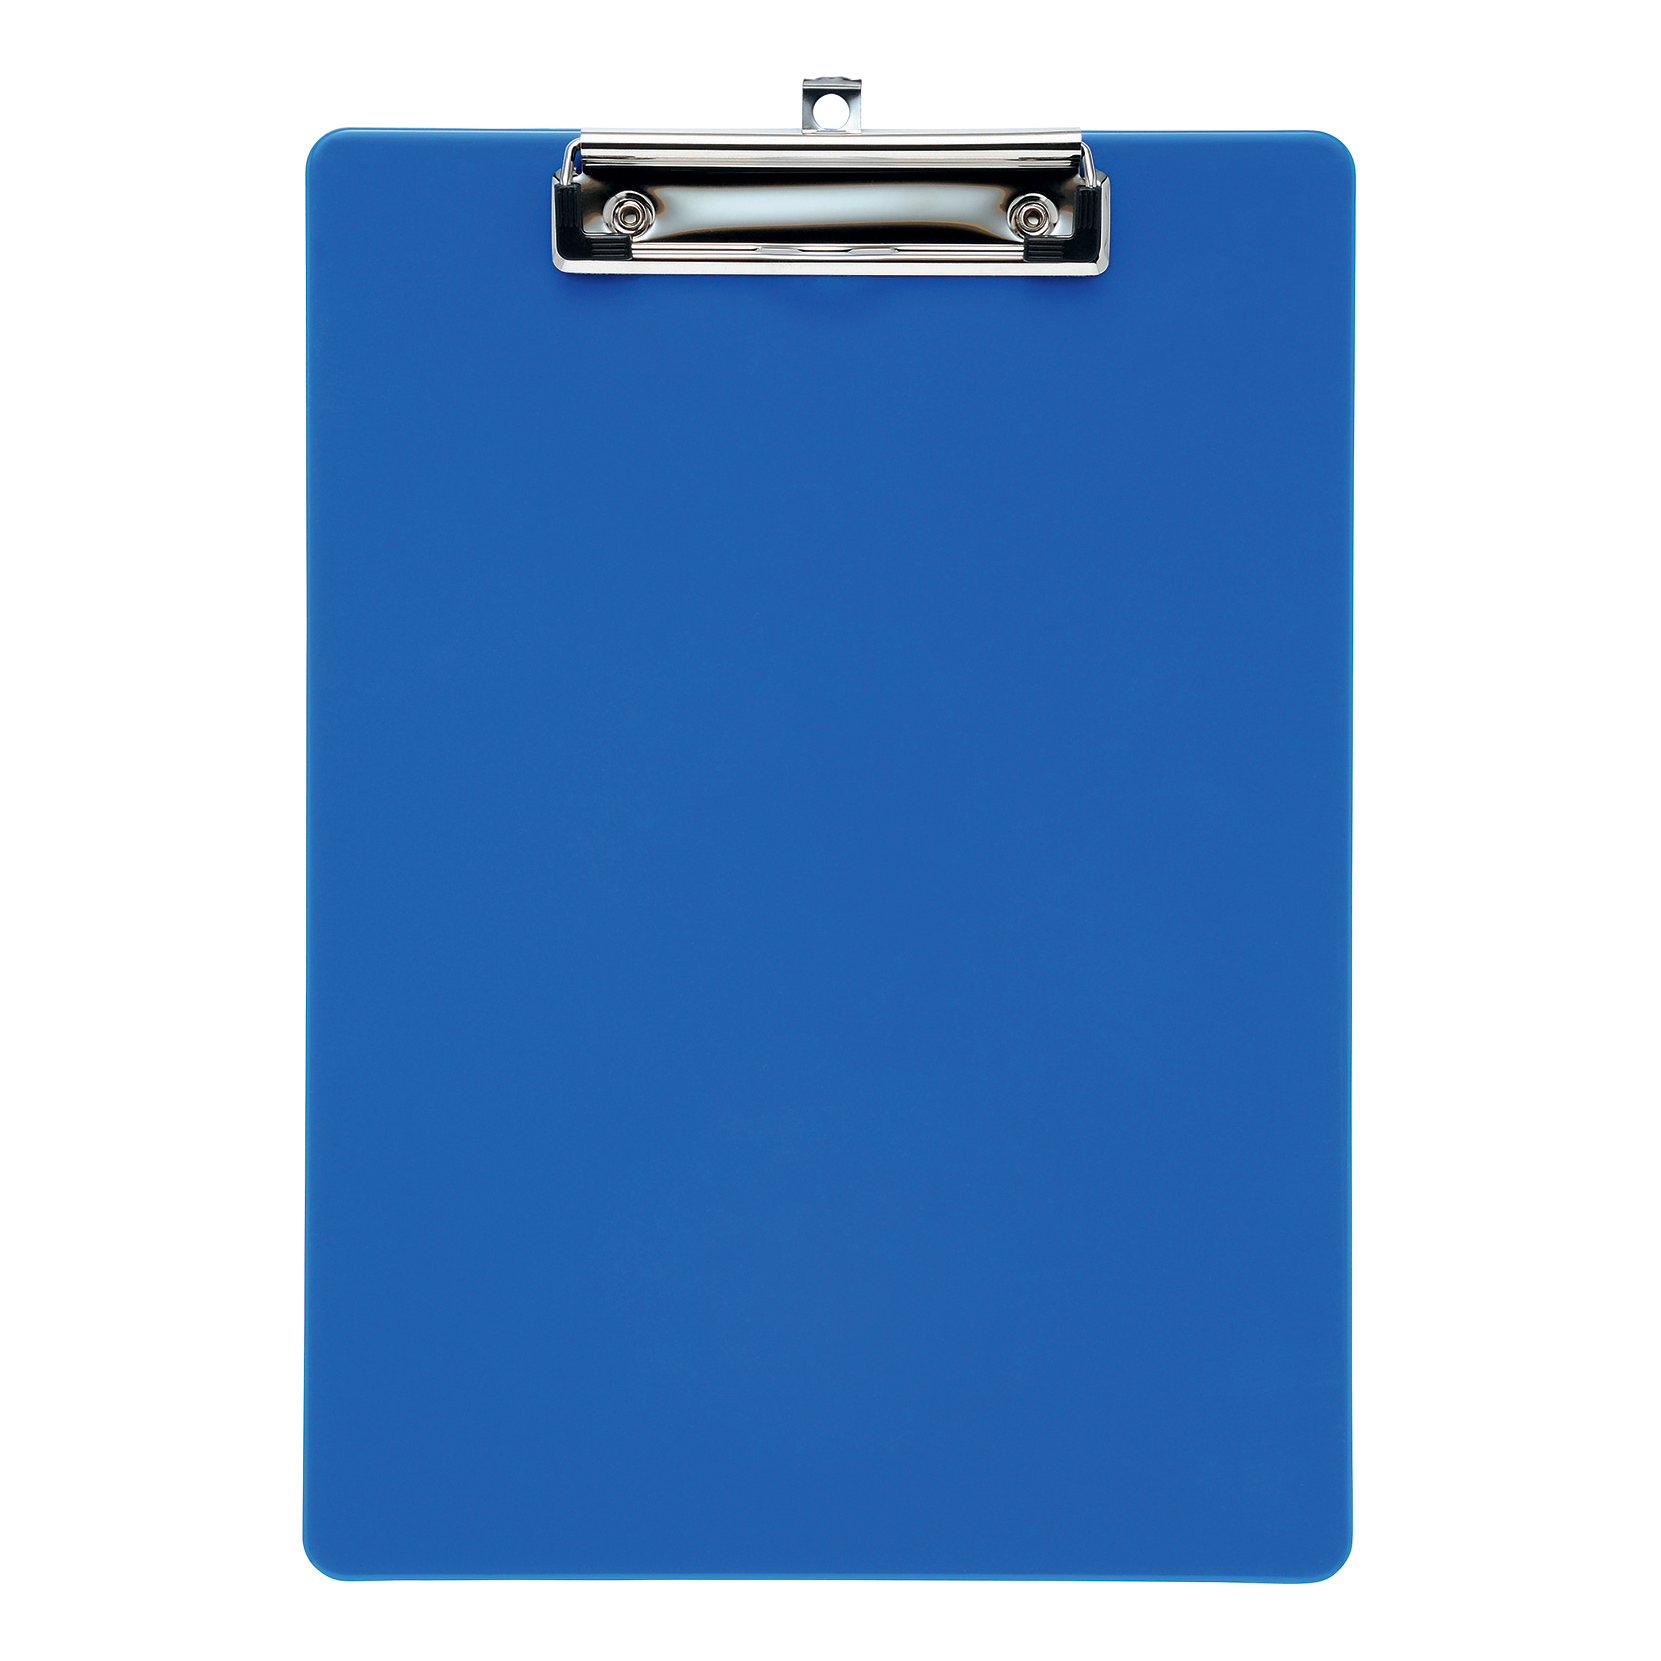 Clipboards 5 Star Office Clipboard Solid Plastic Durable with Rounded Corners A4 Blue